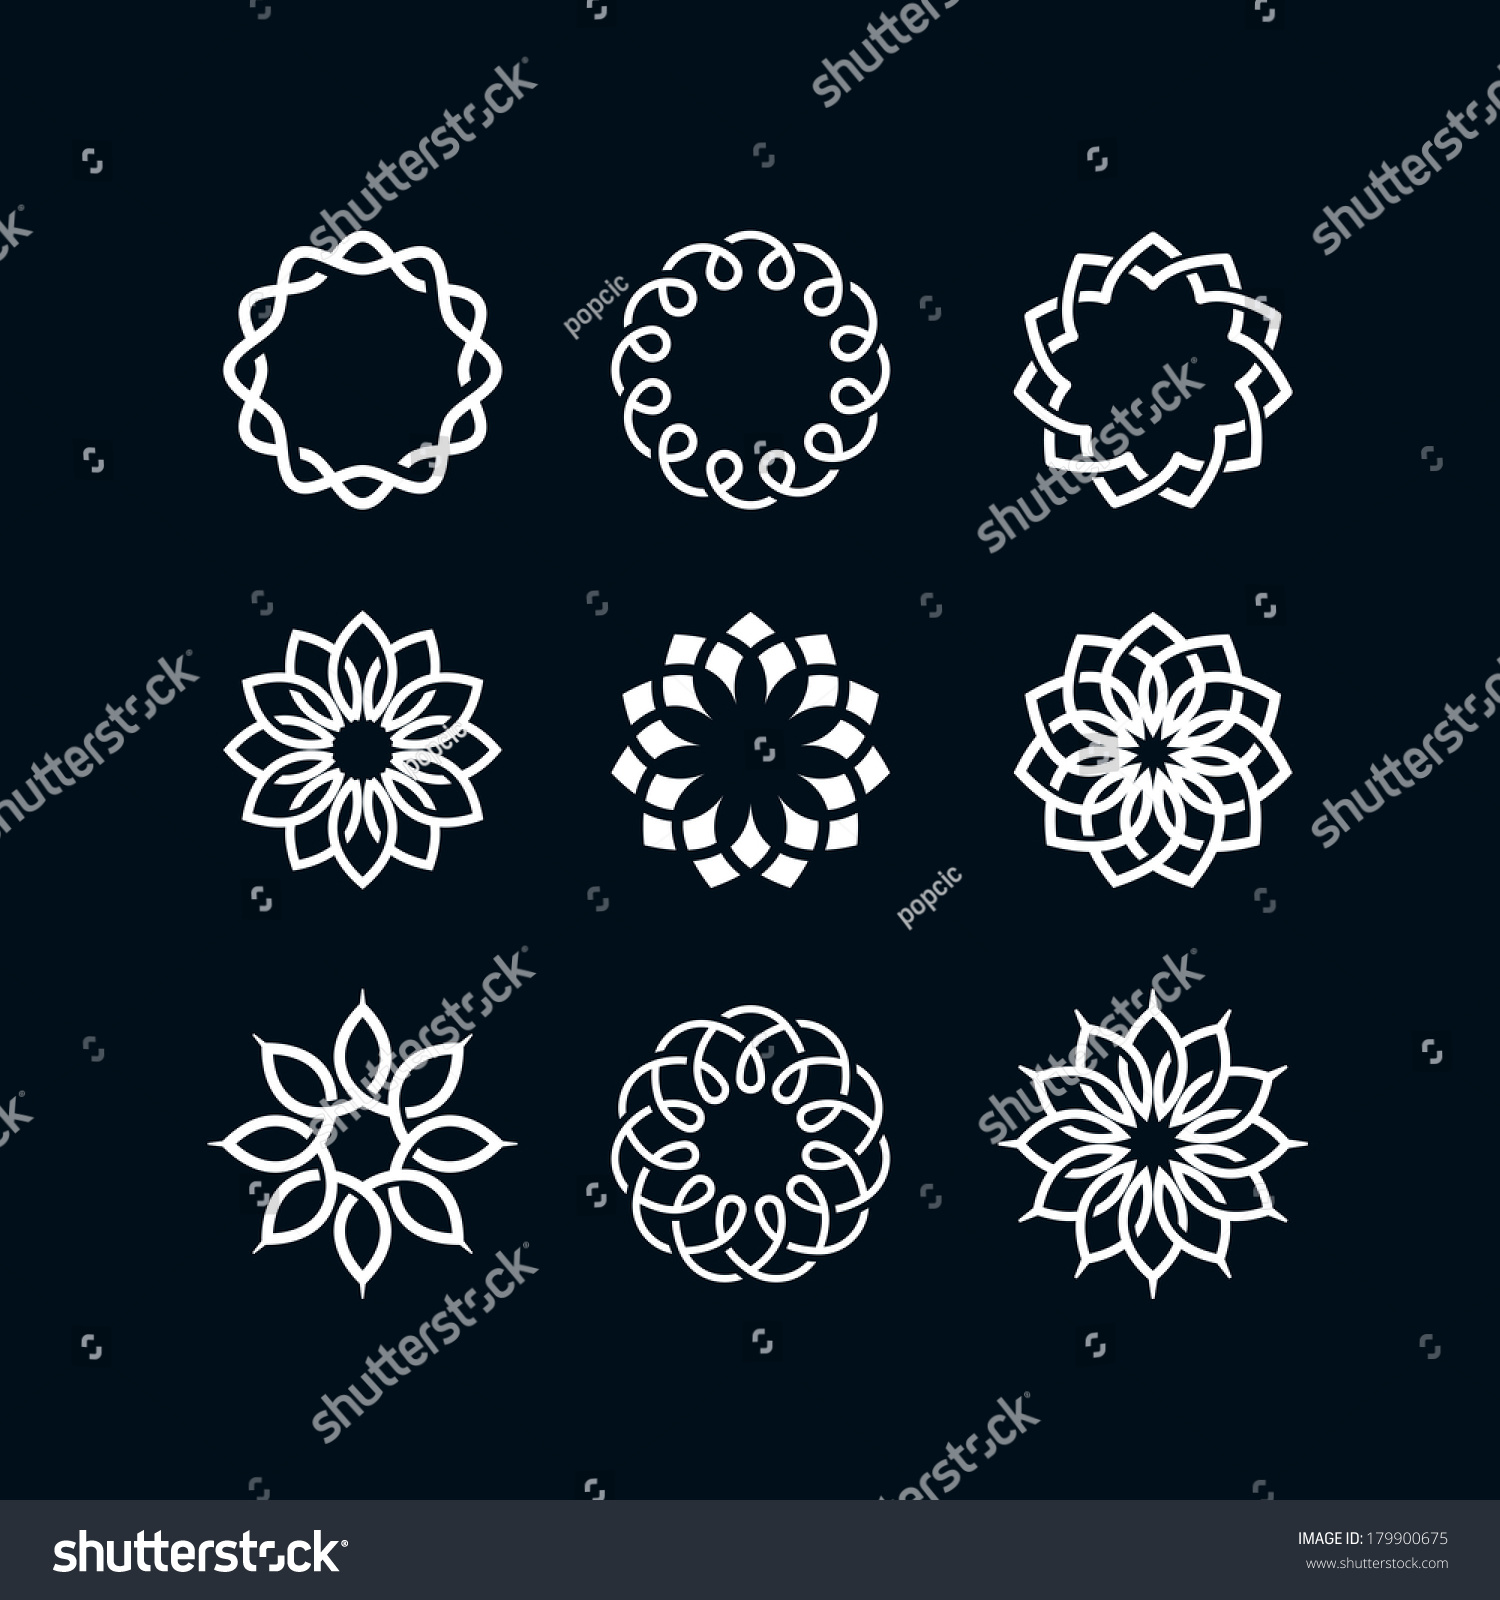 Abstract Flower Symbols Stock Vector Shutterstock